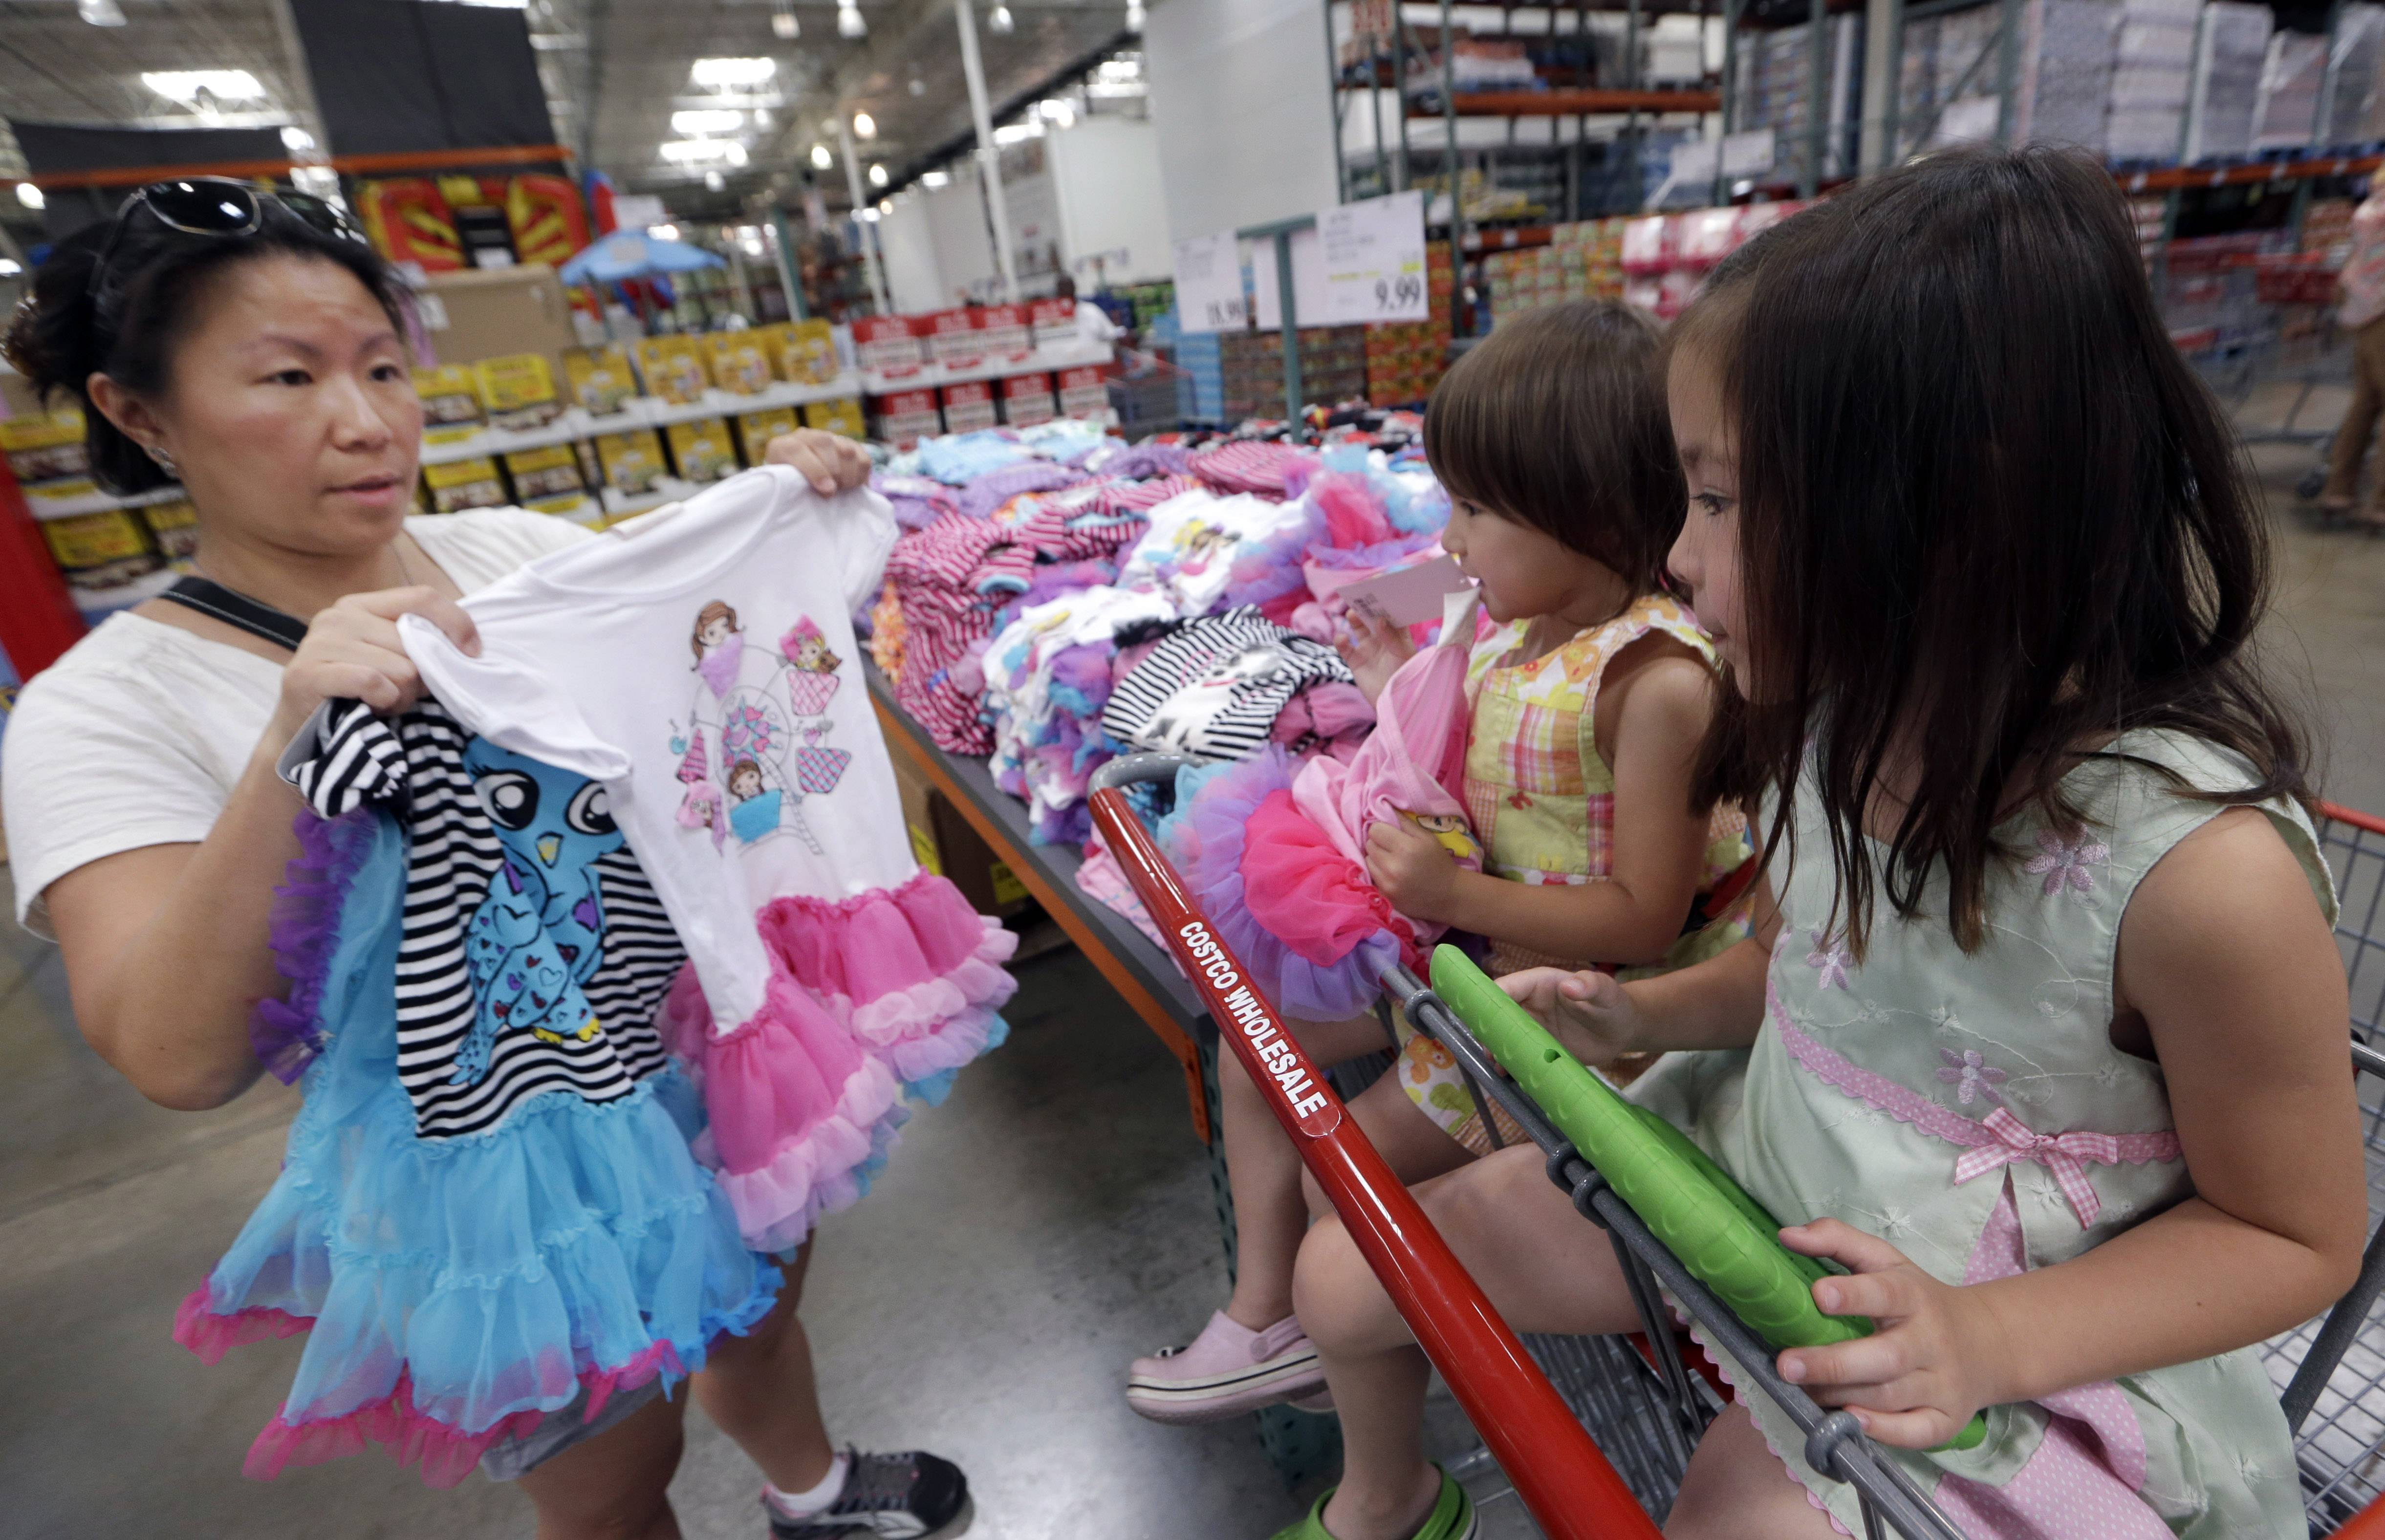 Carry Johnson, left, shows dresses to her daughters Zoey, 3, center, and Payton while they shop at a Costco in Plano, Texas. Confidence among U.S. consumers soared in July to the highest level in almost seven years as Americans grew more upbeat about the labor market and the outlook for the economy.